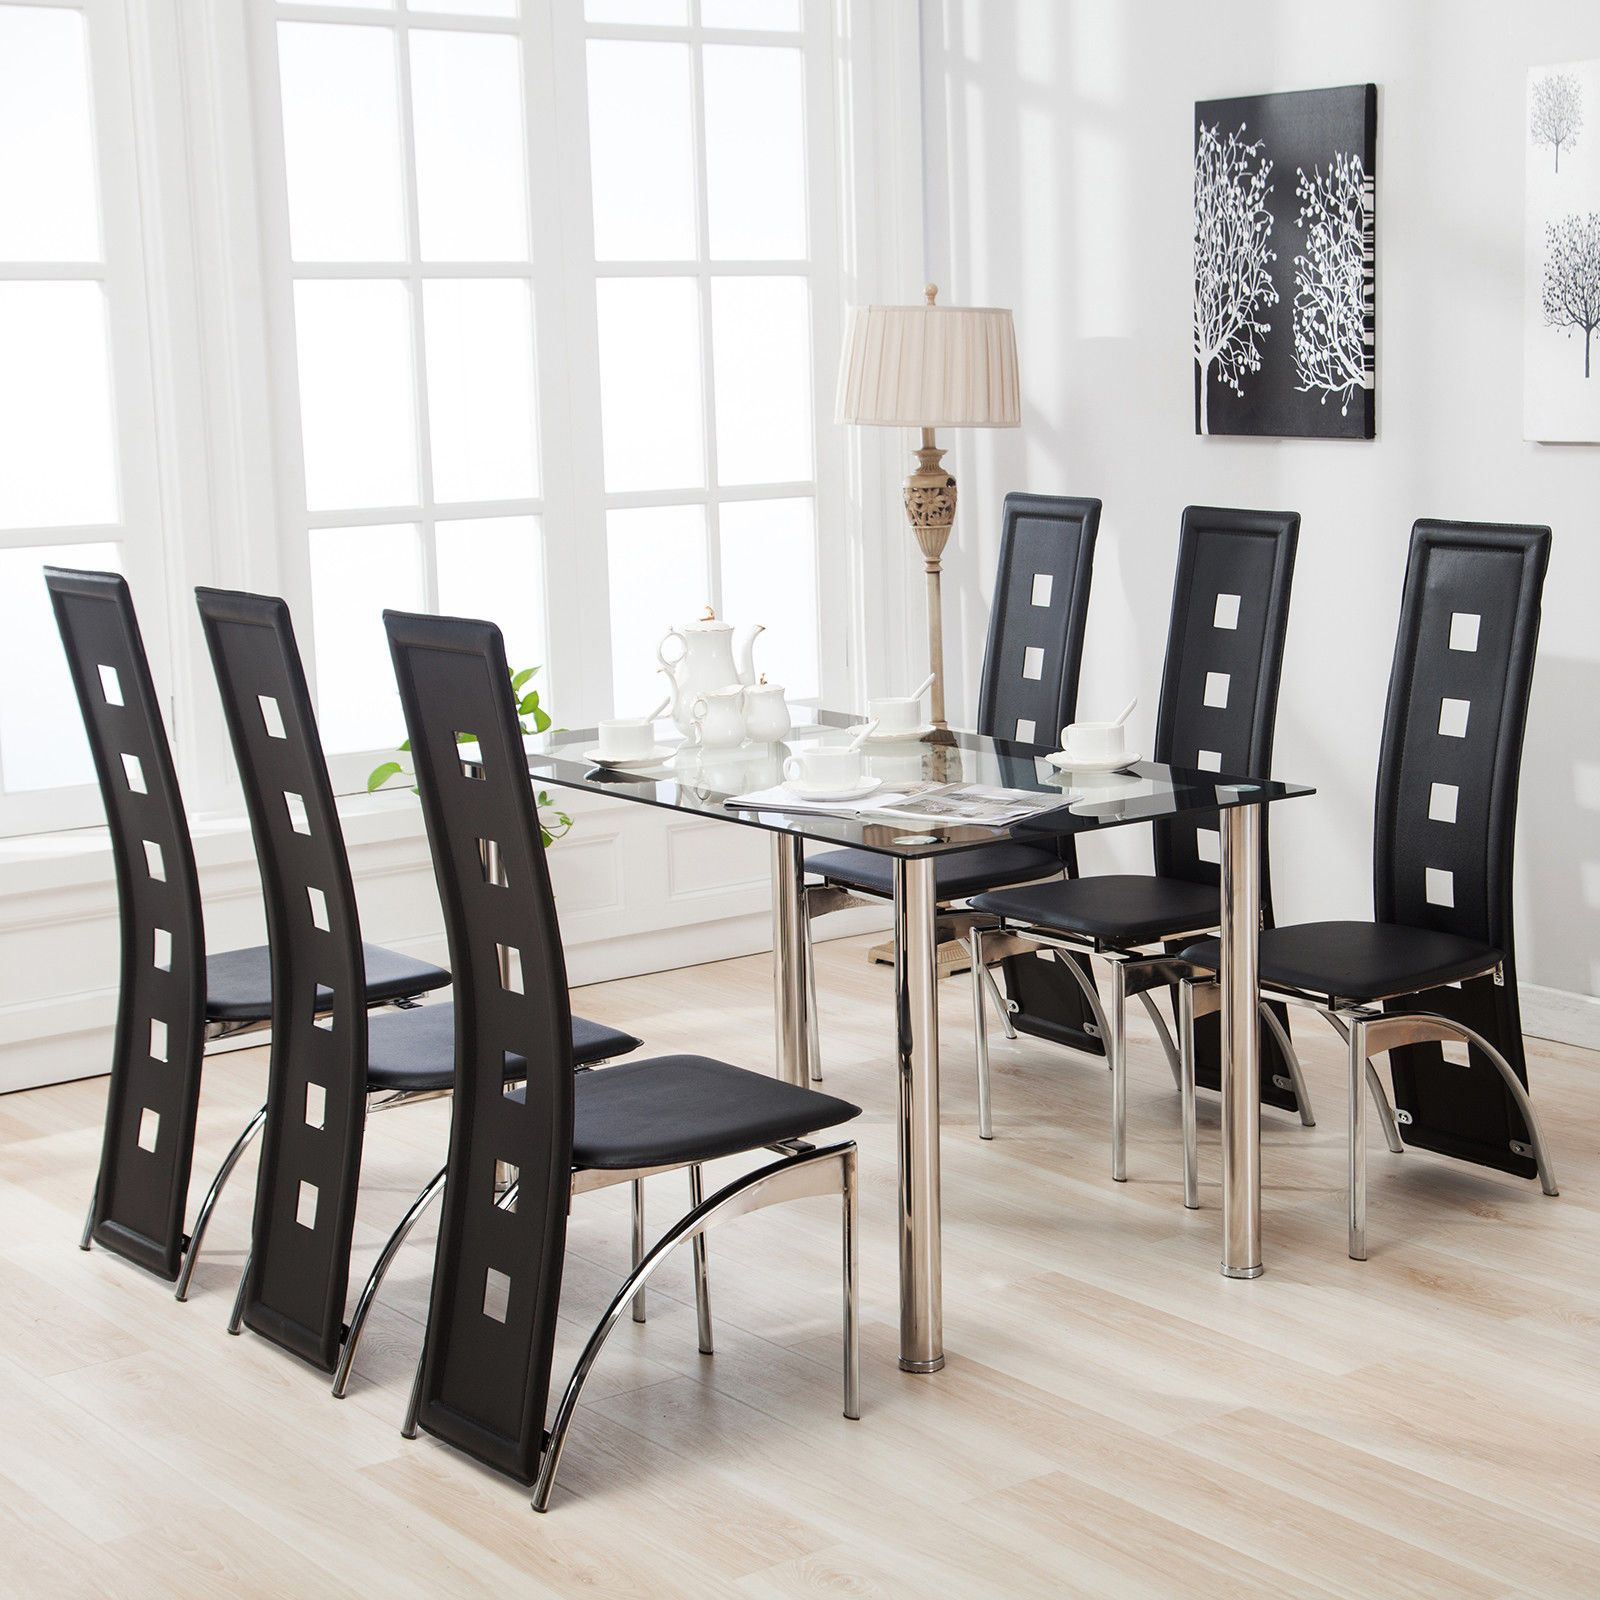 Contemporary Glass Dining Table Design Come With 2 Tier To Storage Space Together Four Glass Dining Table Set Glass Dining Room Table Modern Glass Dining Table